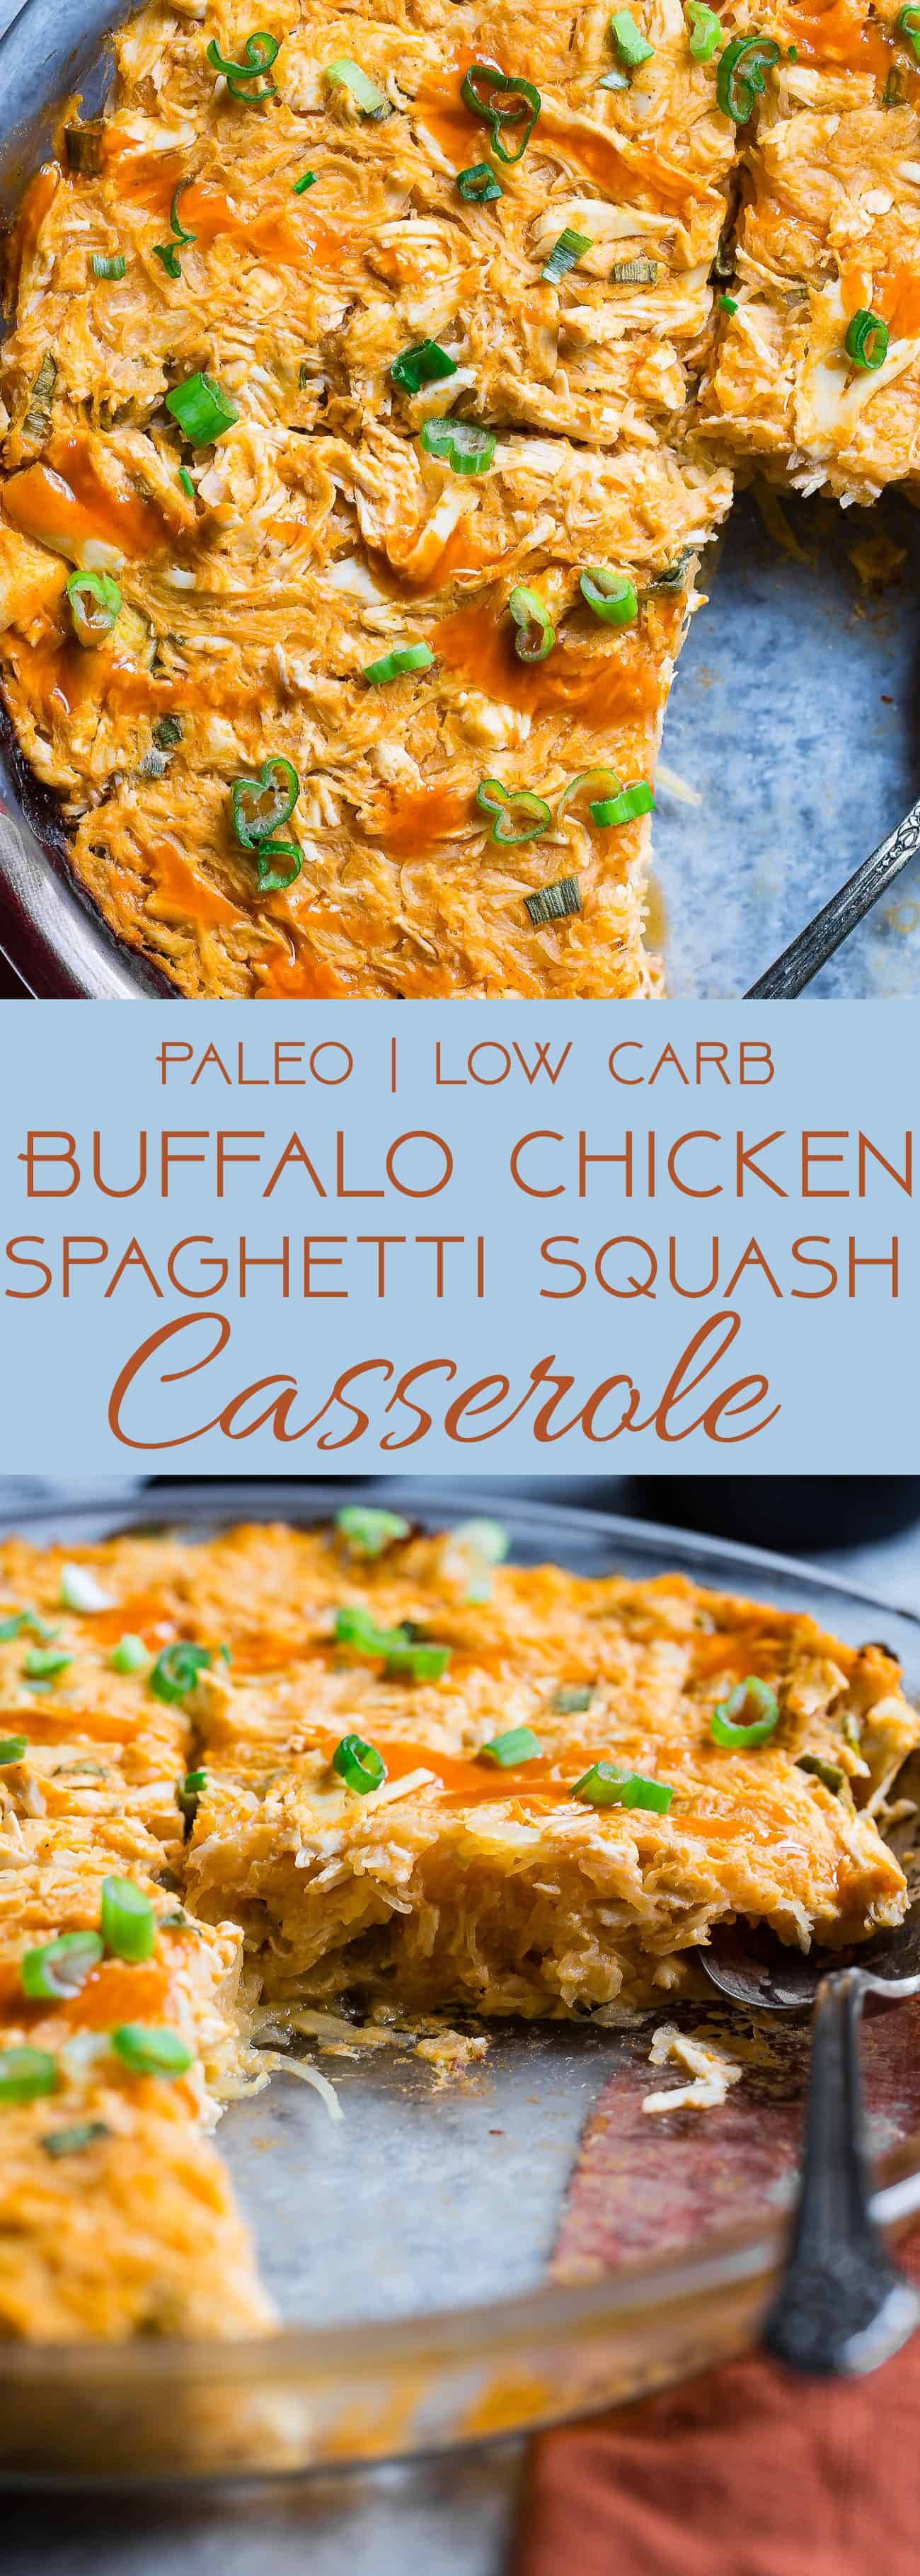 Paleo Buffalo Chicken Baked Spaghetti Squash Casserole -  This EASY, keto and whole30 casserole is only 7 ingredients, 320 calories and packed with protein! It's a family friendly, low carb, weeknight dinner that even picky eaters will love! | #Foodfaithfitness | #Keto #paleo #glutenfree #whole30 #kidfriendly